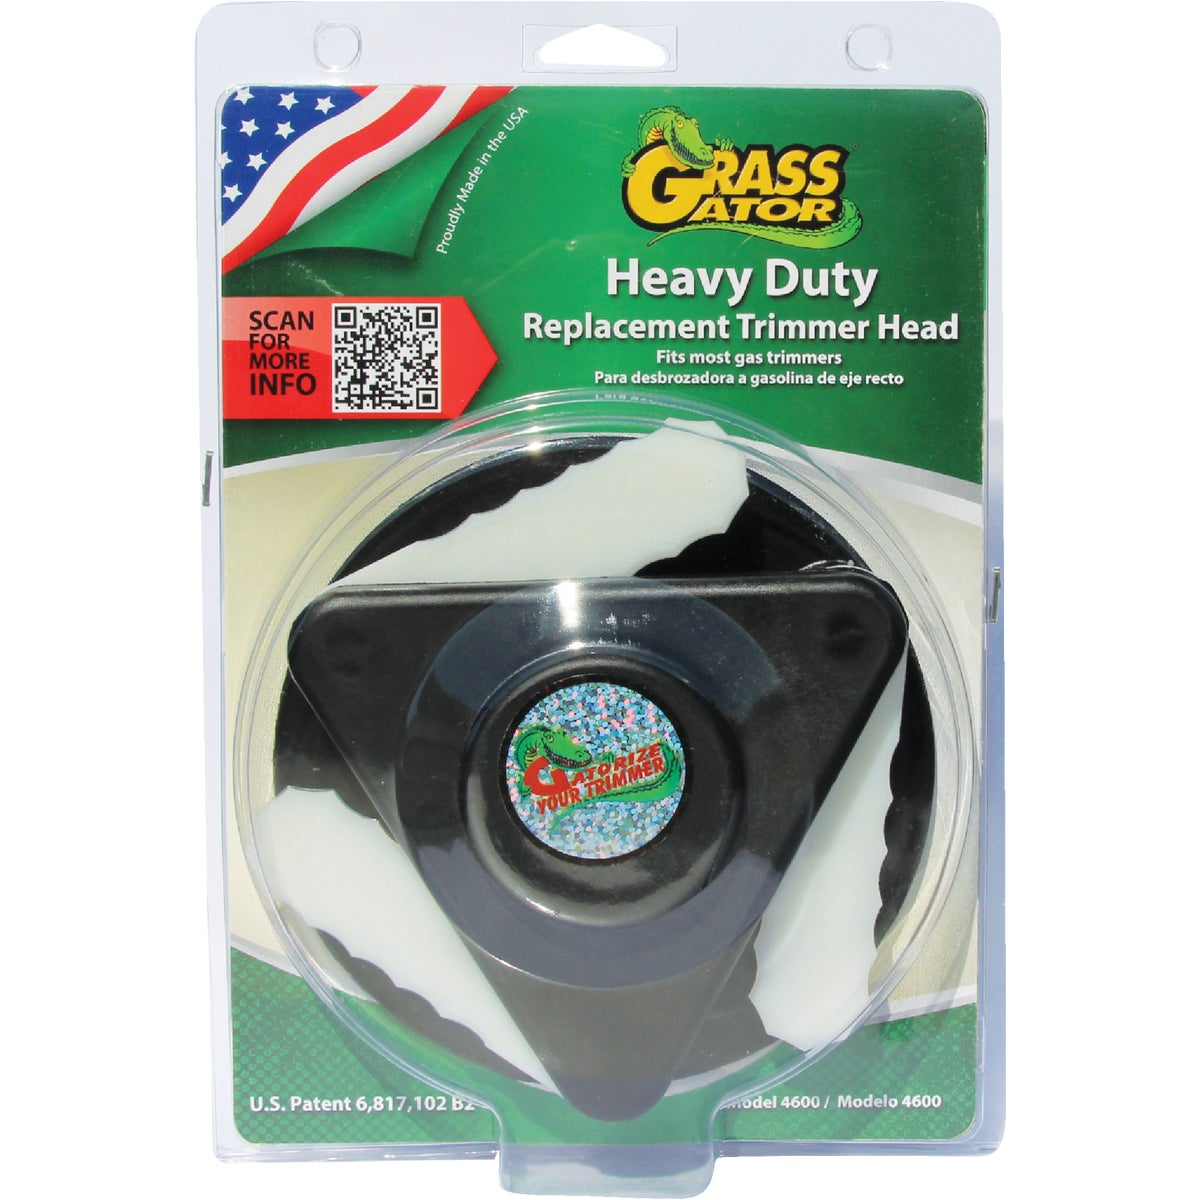 HV DUTY GAS TRIMMER HEAD - 4600 by C M D Products